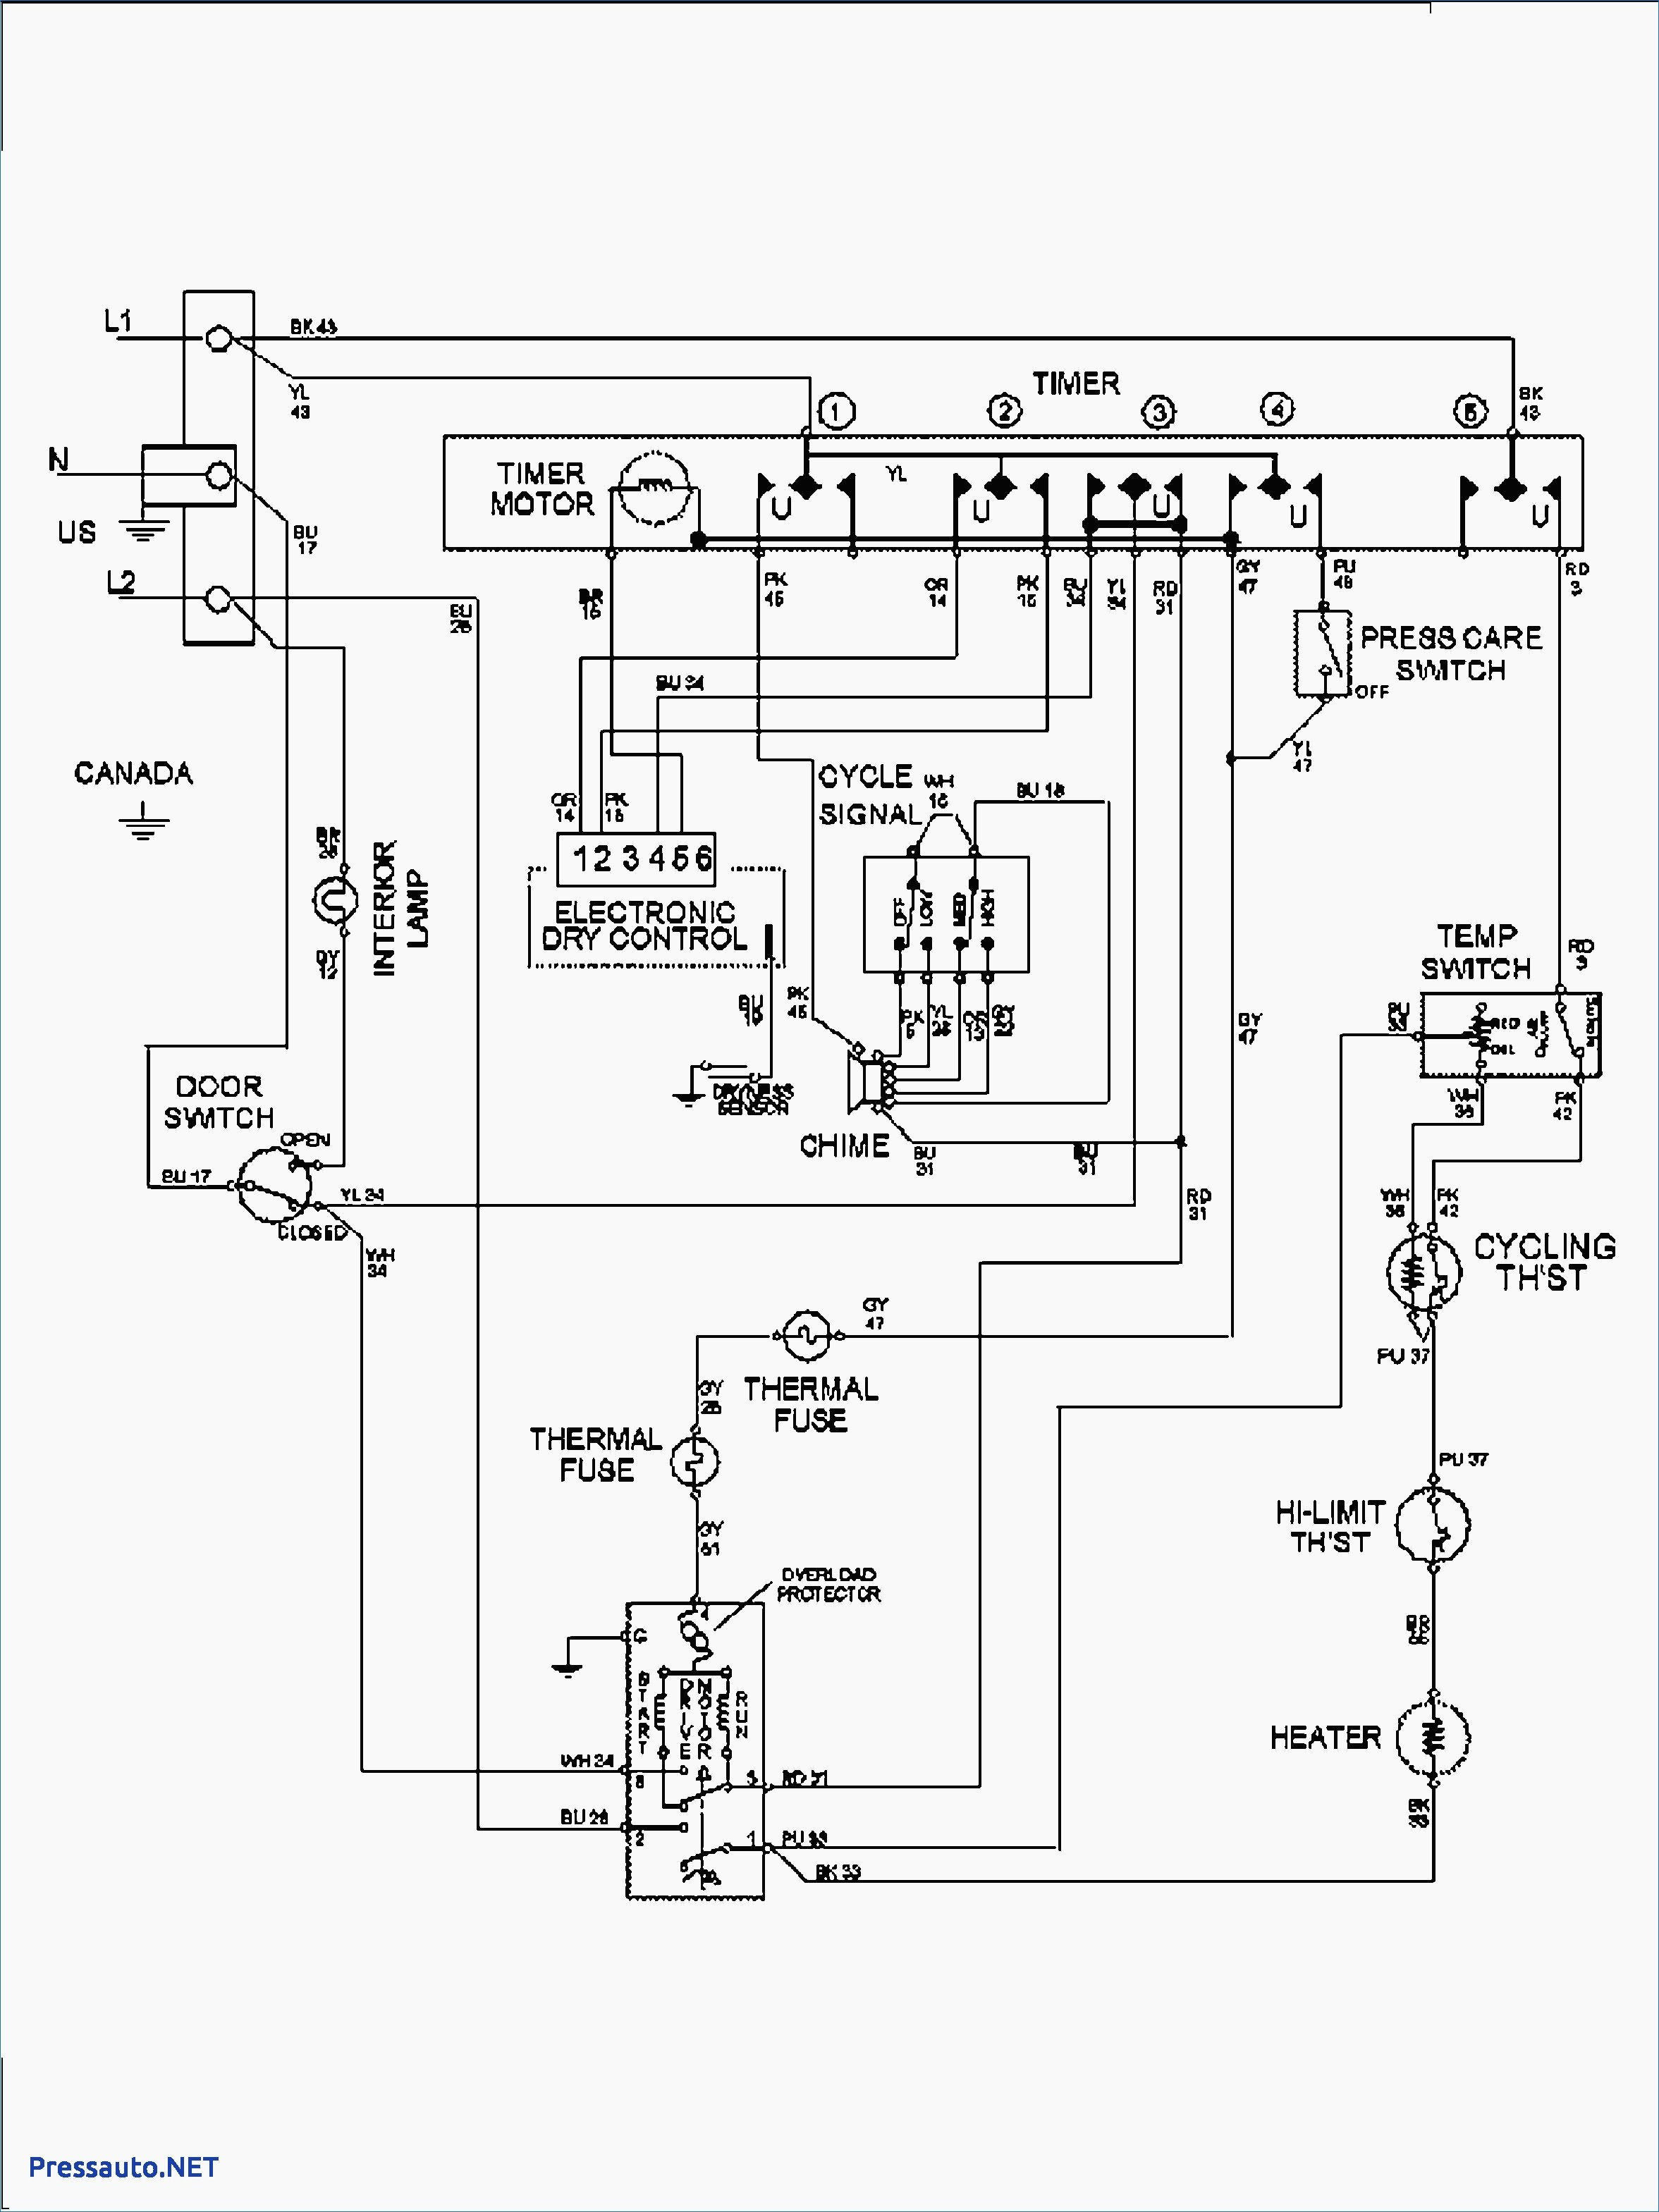 Wiring Diagram Roper Electric Dryer - Today Diagram Database on